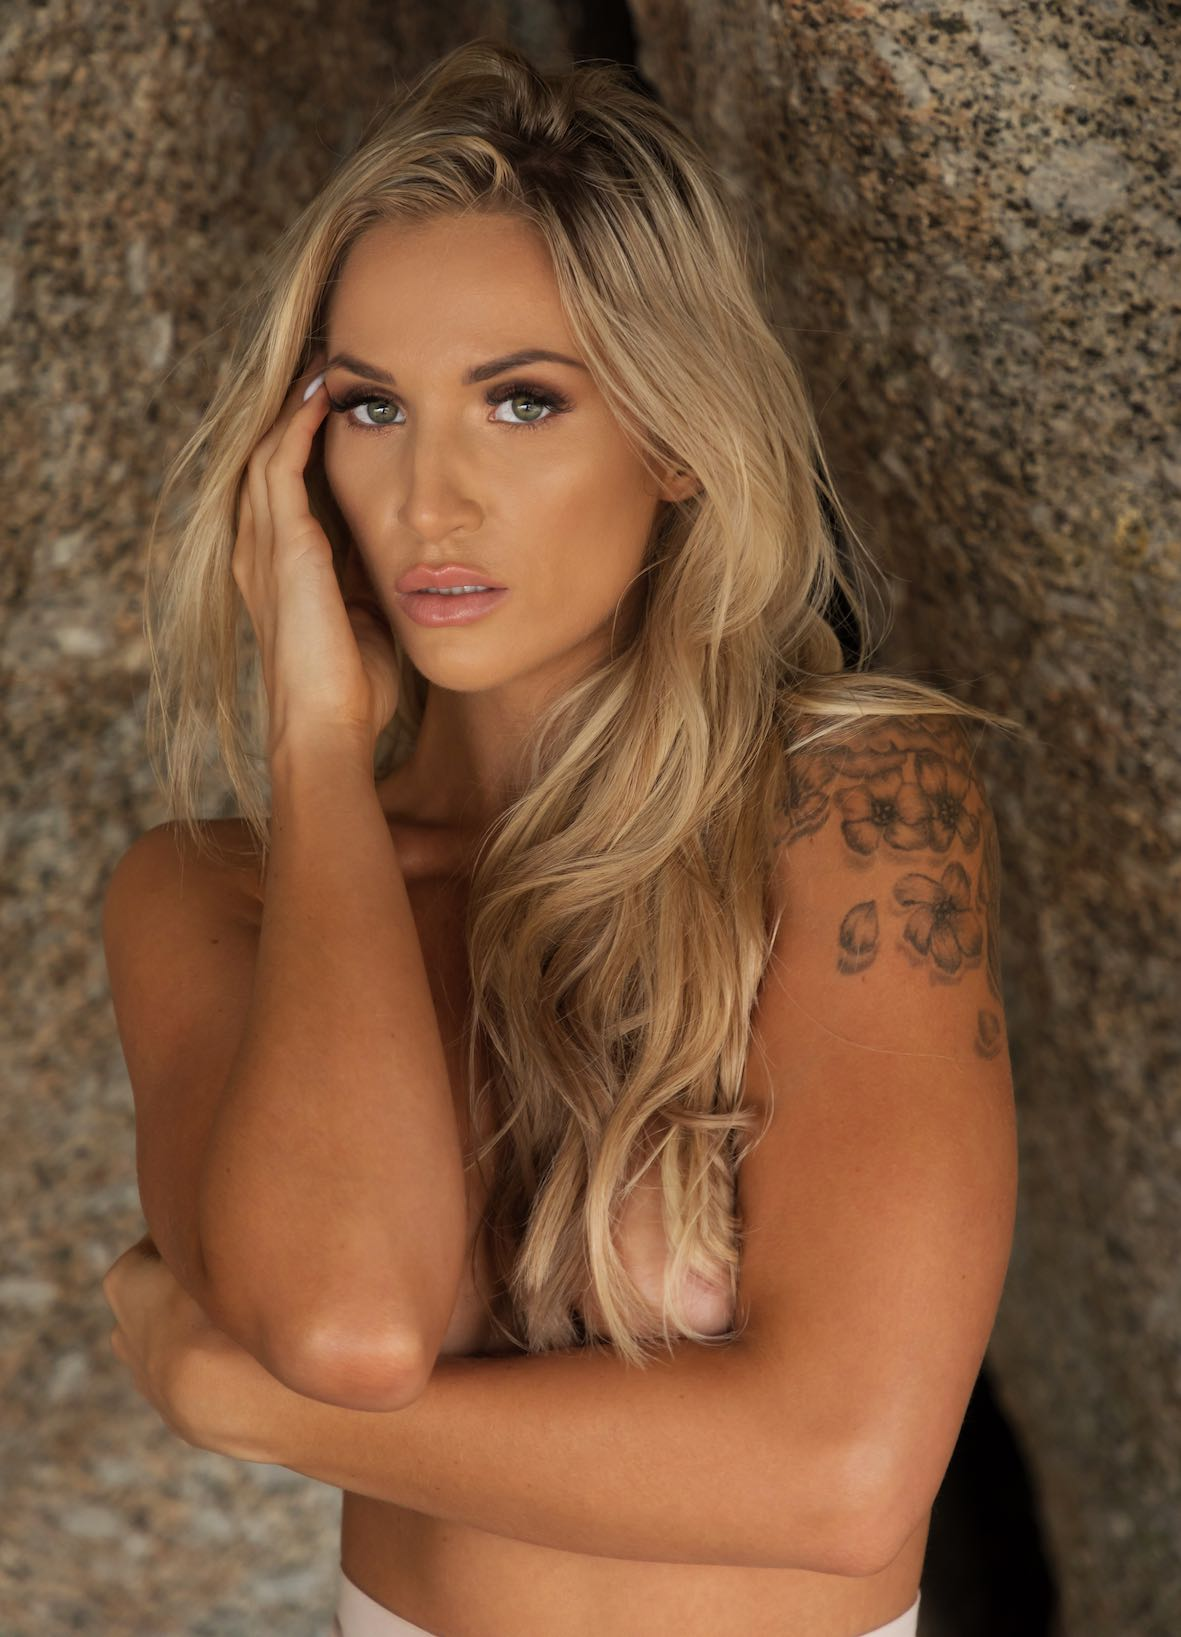 Our South African Girls feature with Kayla Baker